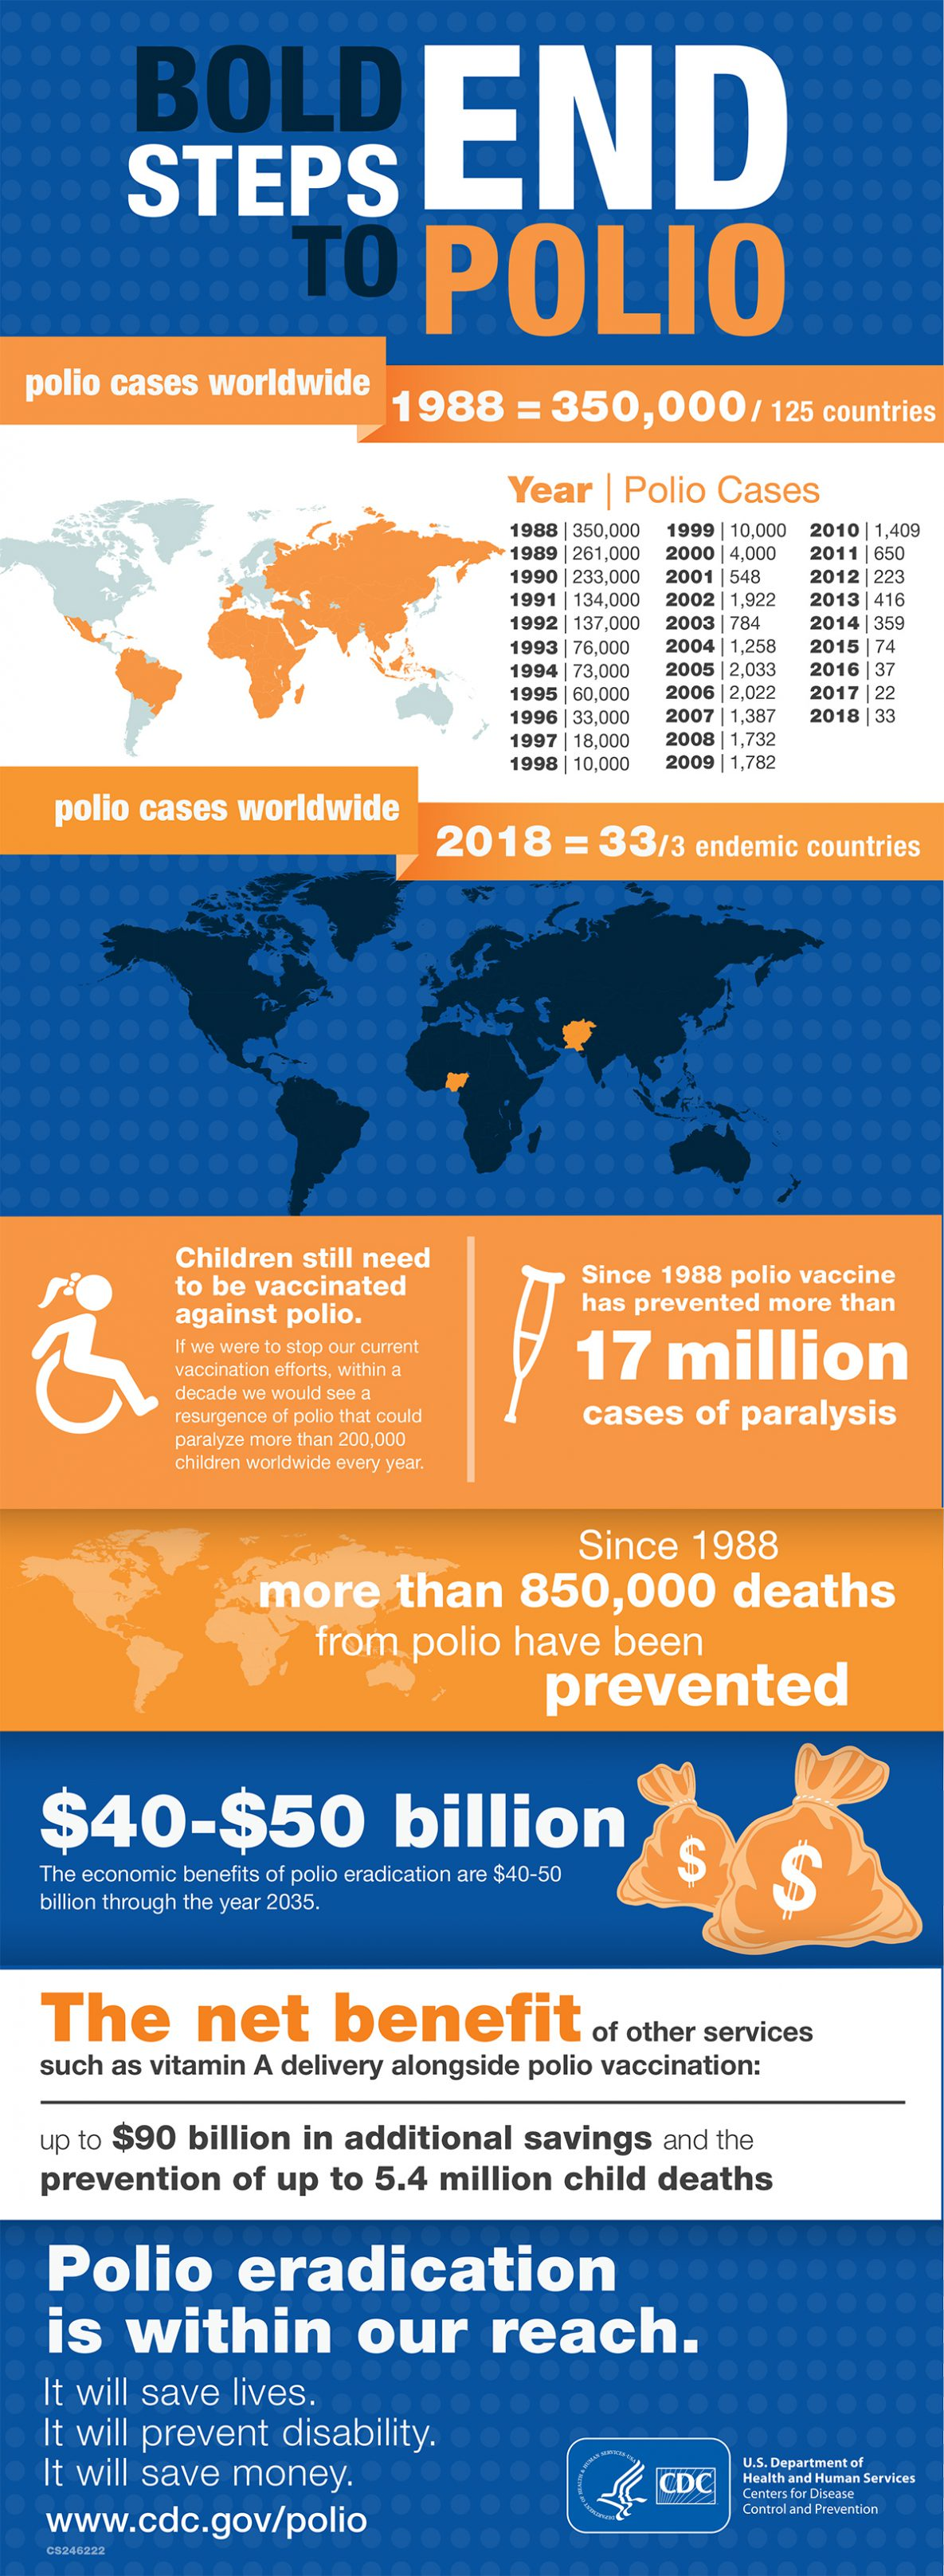 Bold Steps to End Polio